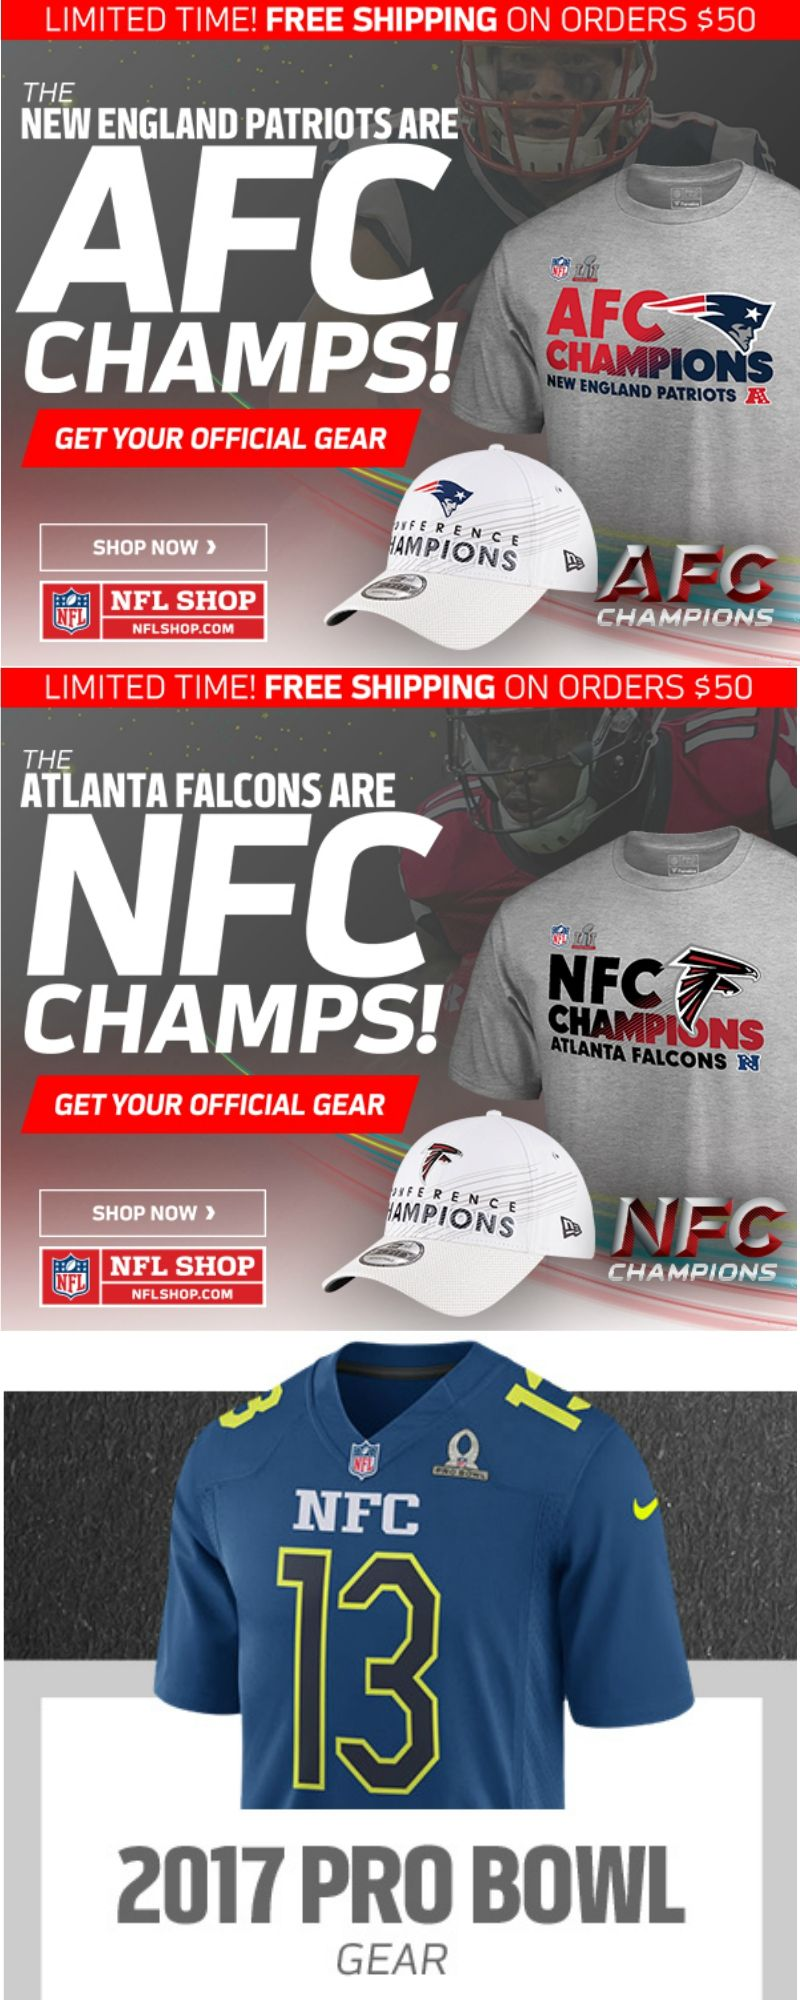 5c0fc24854e13 Get Your Conference Champs Gear and Pro Bowl Gear at NFL Shop. Free  Shipping on